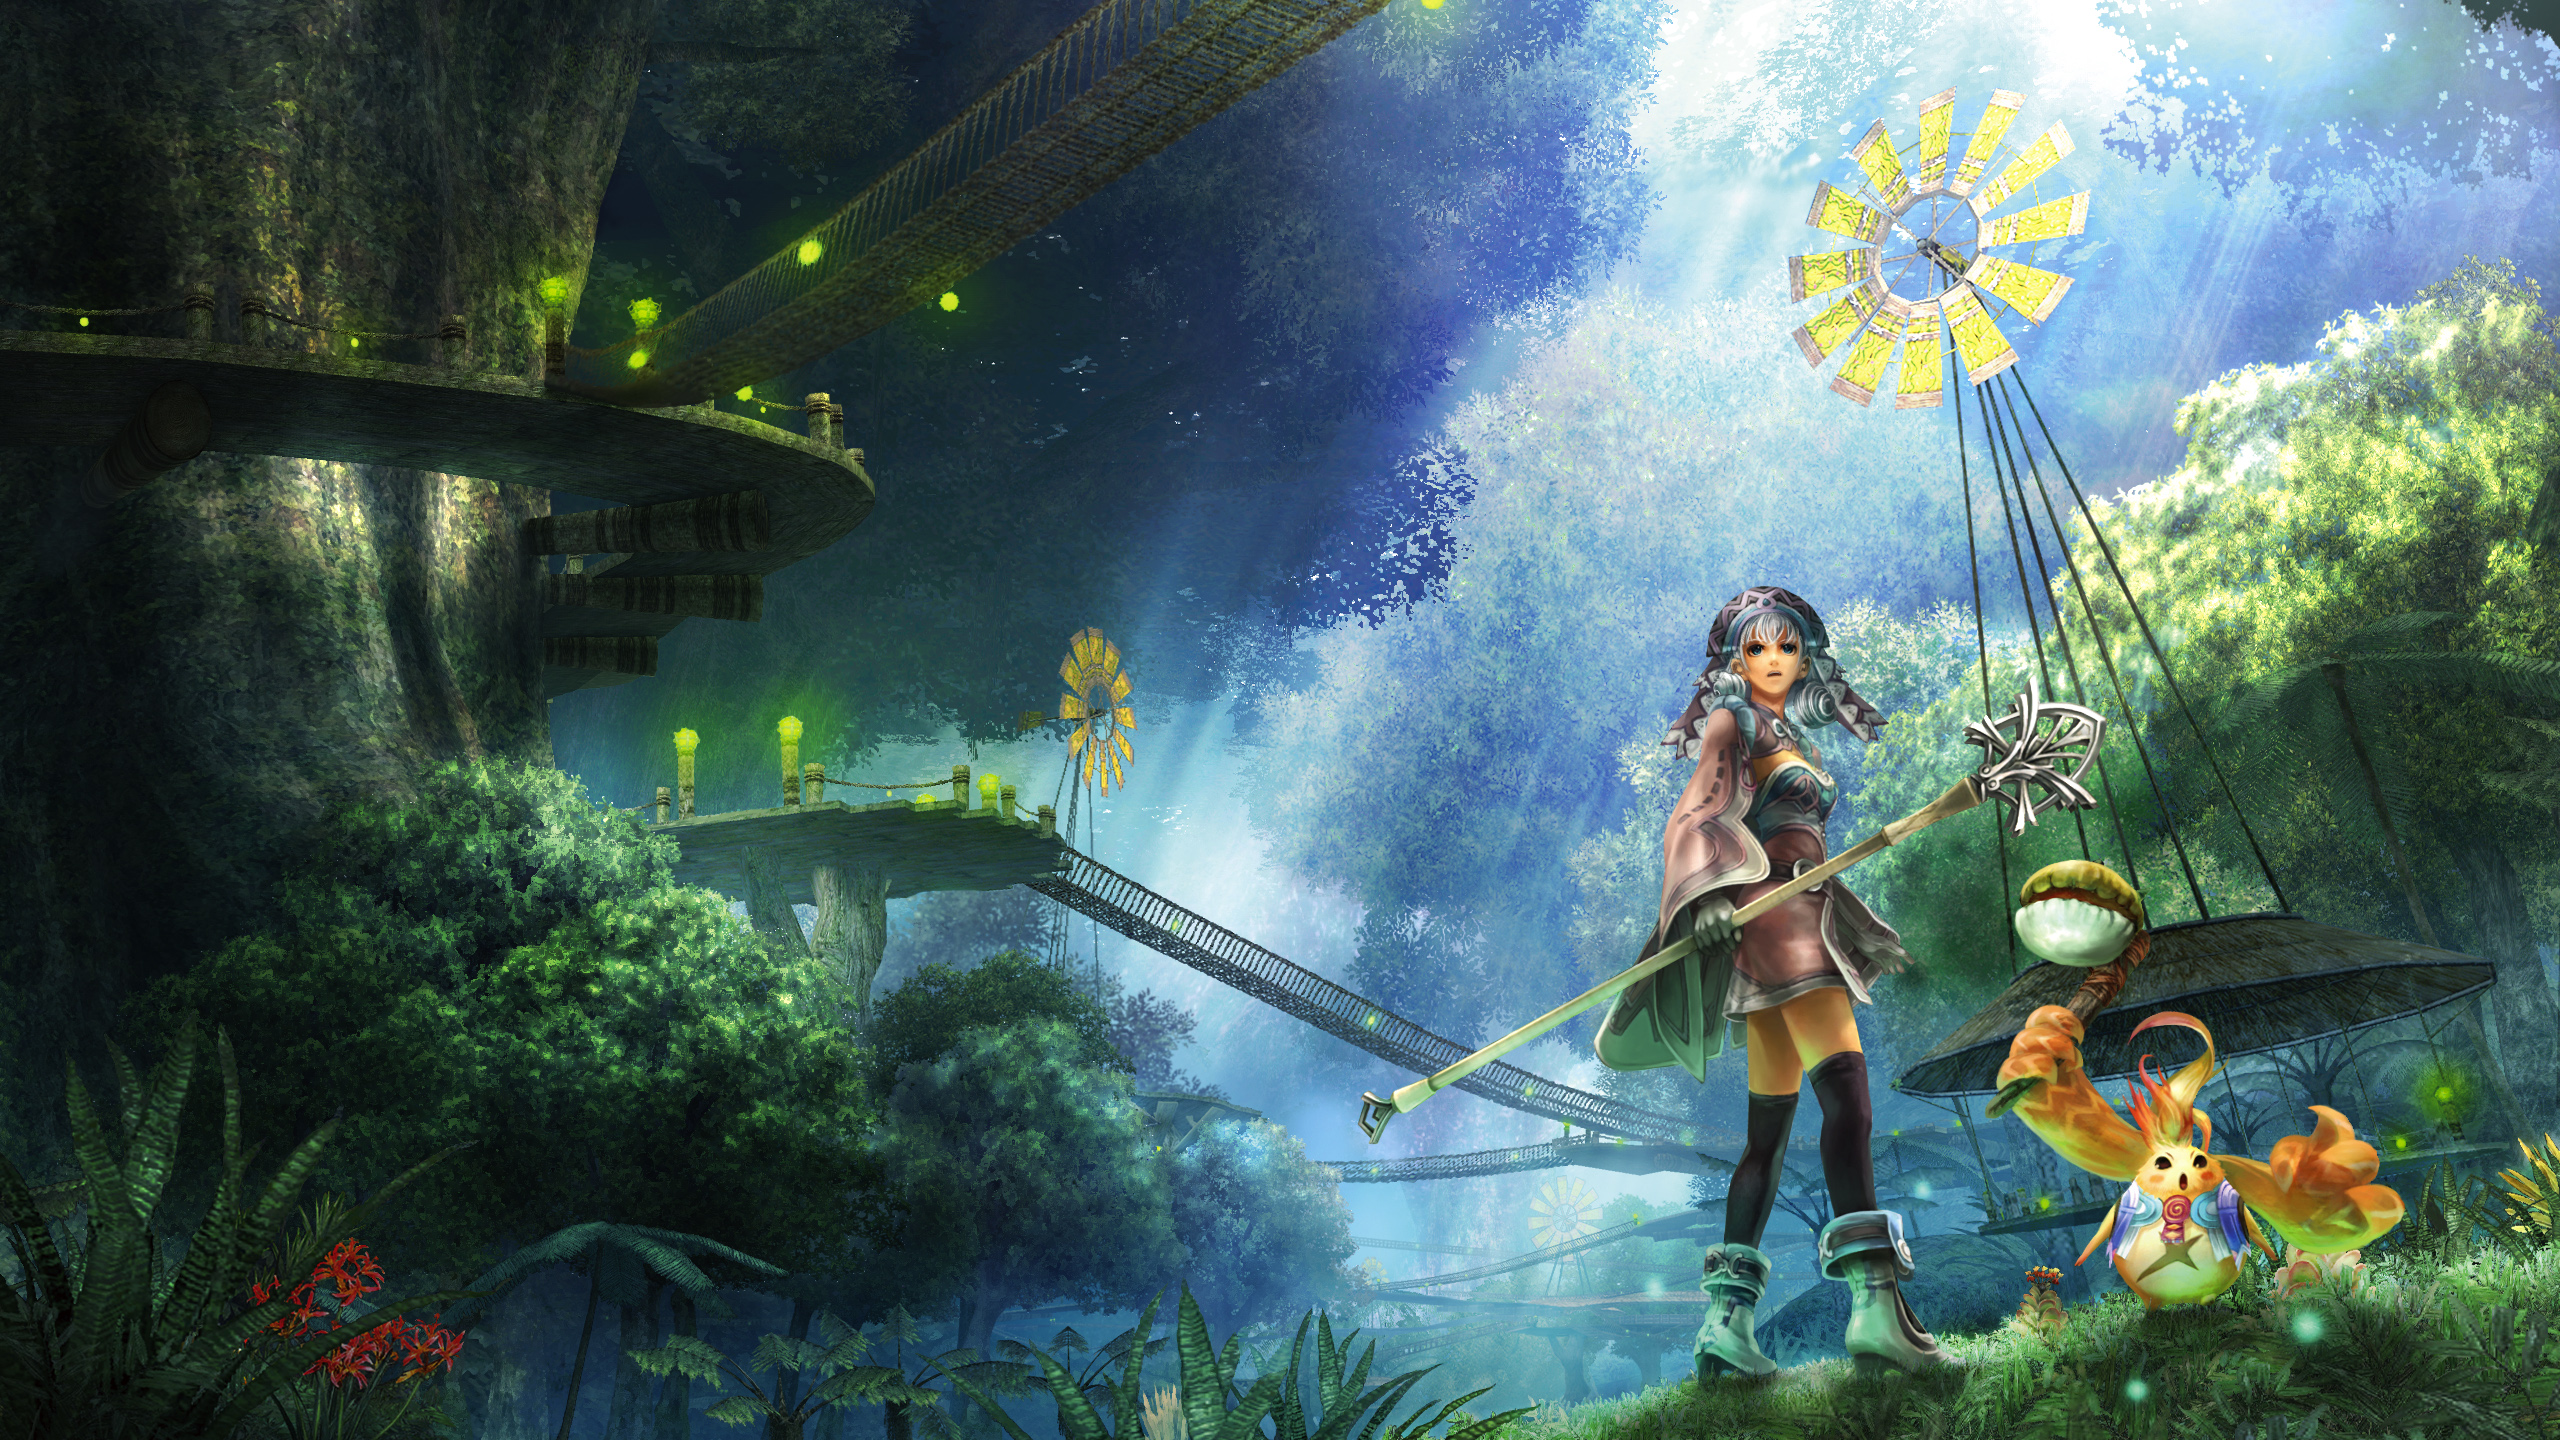 Xenoblade Chronicles anime fantasy wallpaper | 2560x1440 | 152257 | WallpaperUP